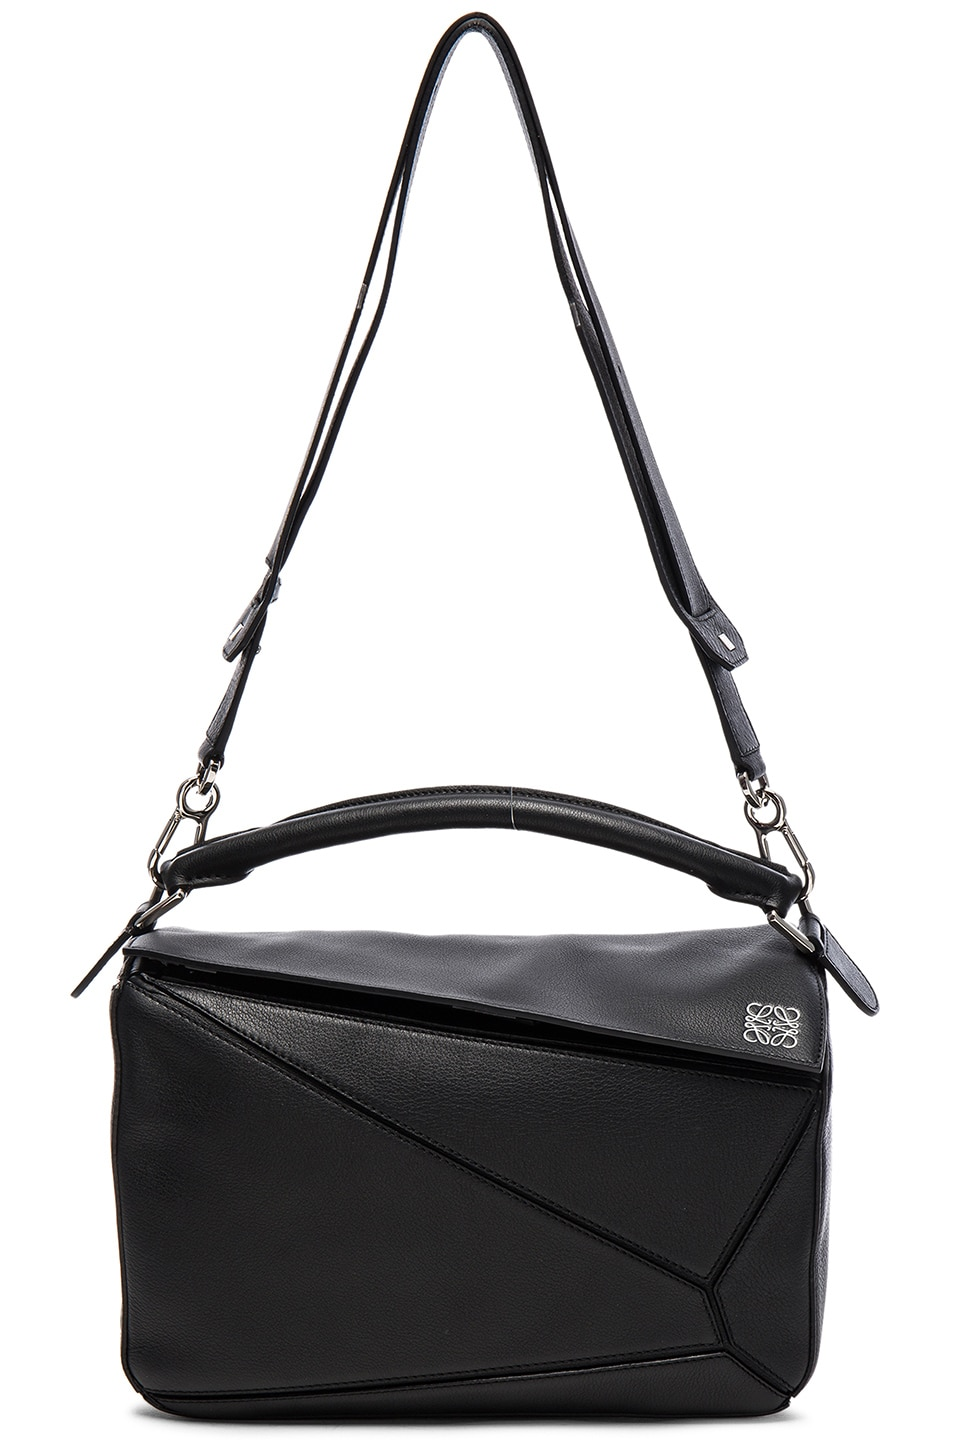 Image 6 of Loewe Puzzle Bag in Black